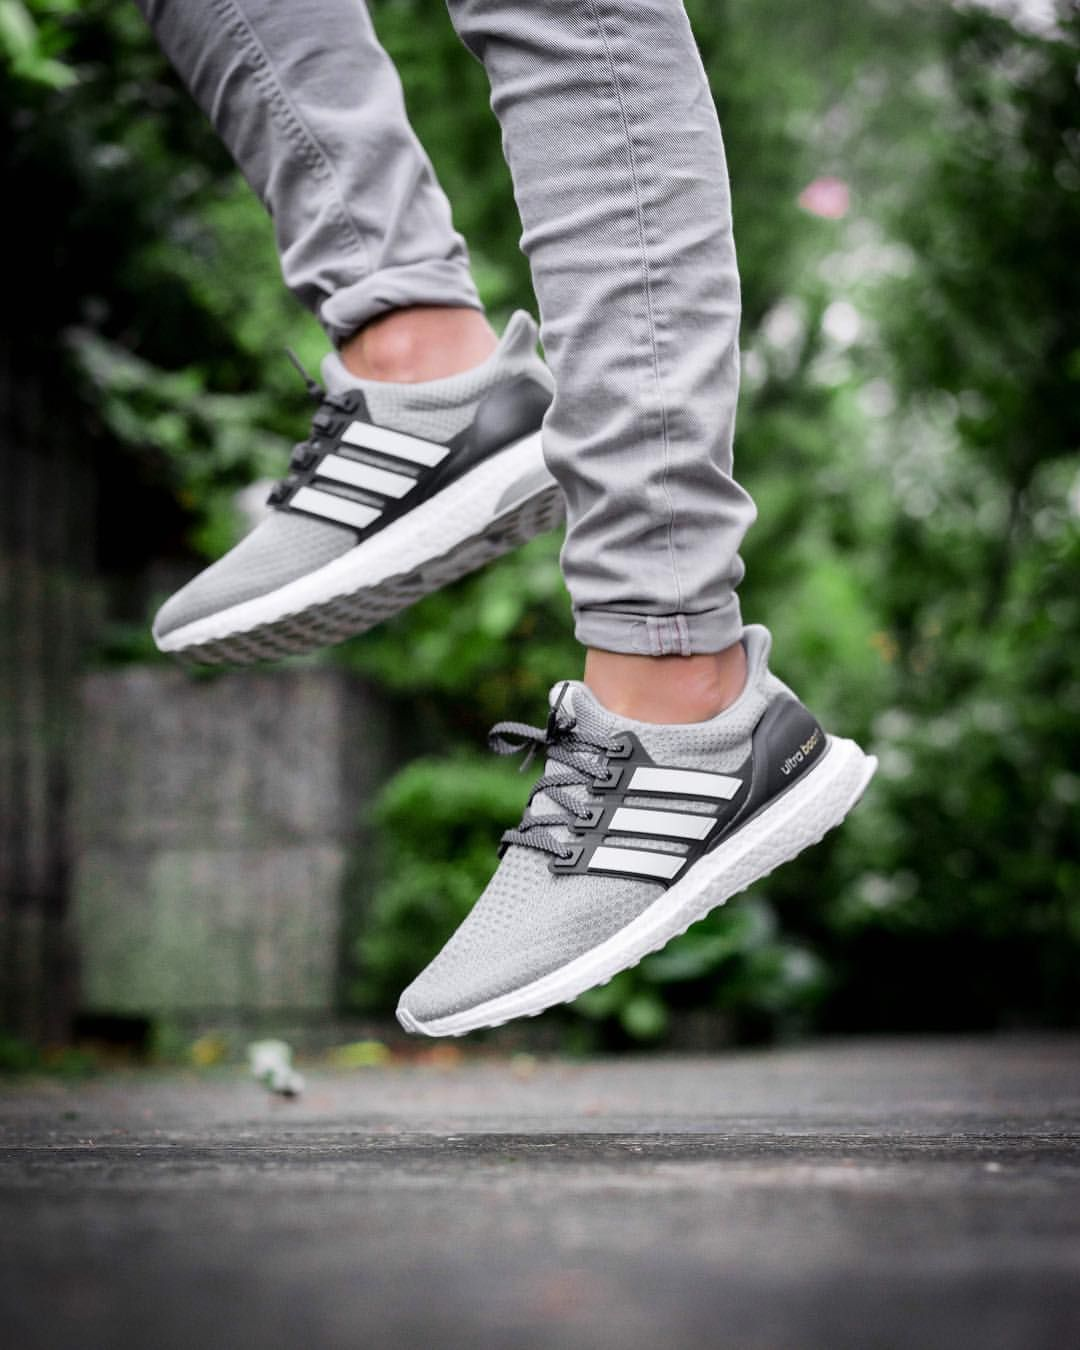 adidas Buty Ultra Boost ST Shoes | Boost shoes, Adidas